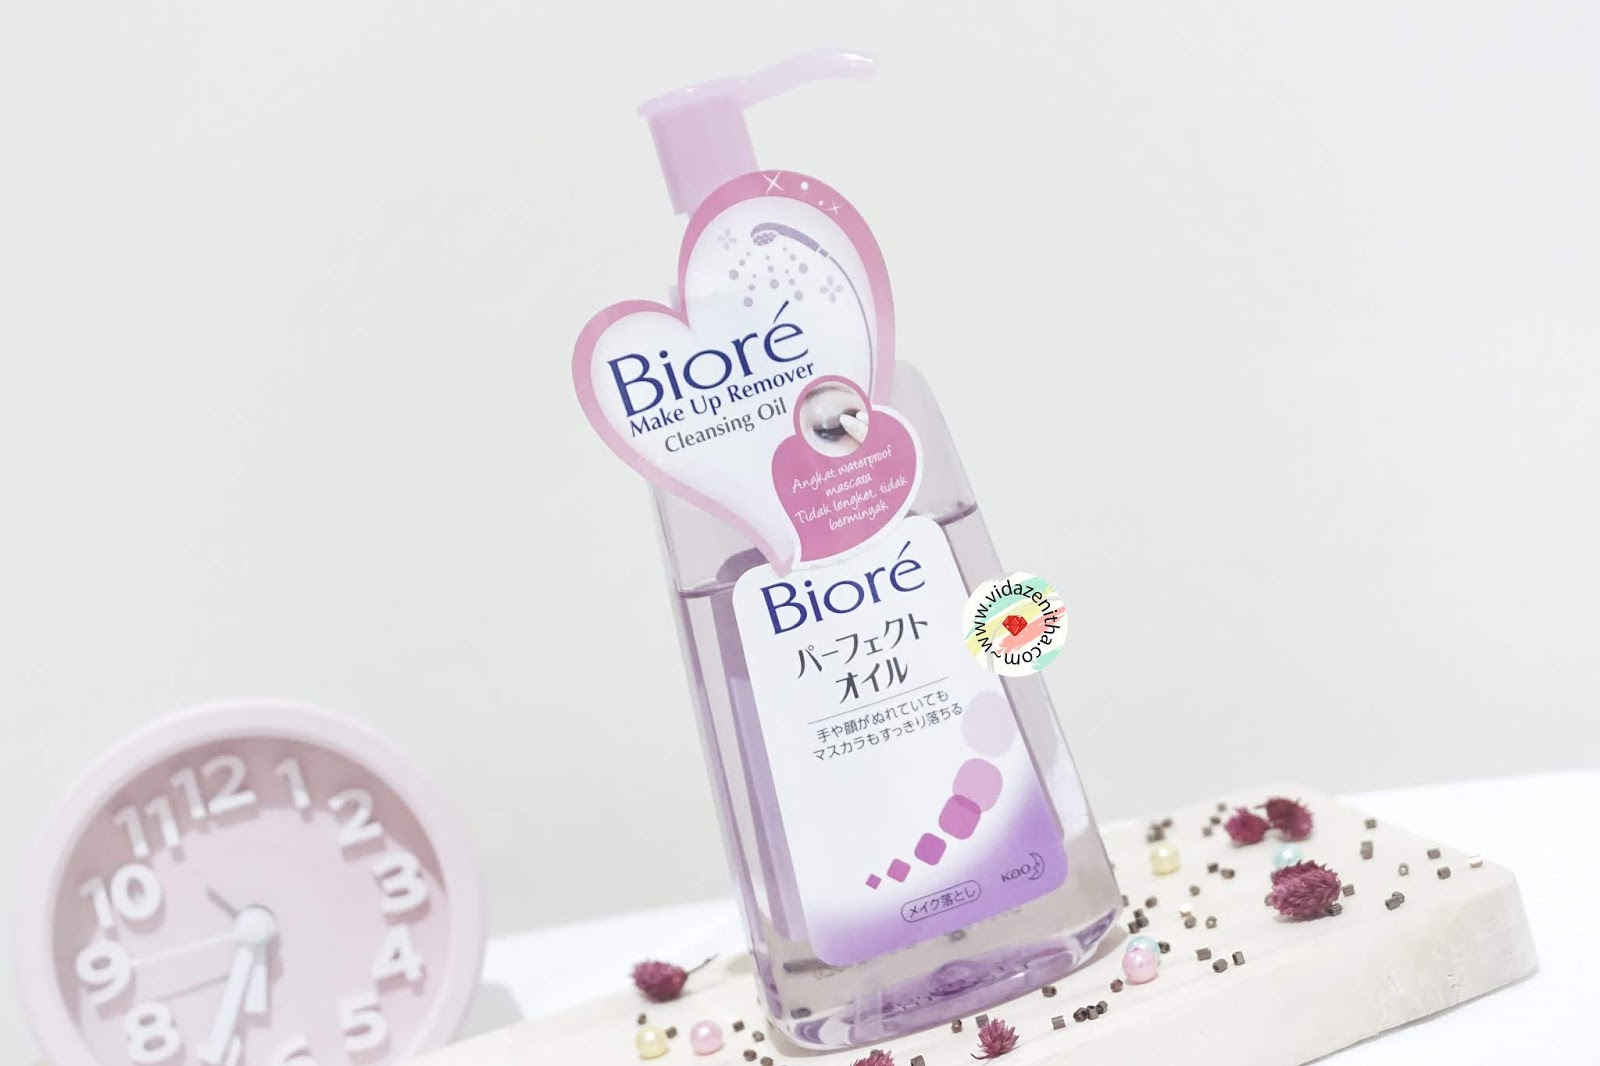 review biore cleansing oil